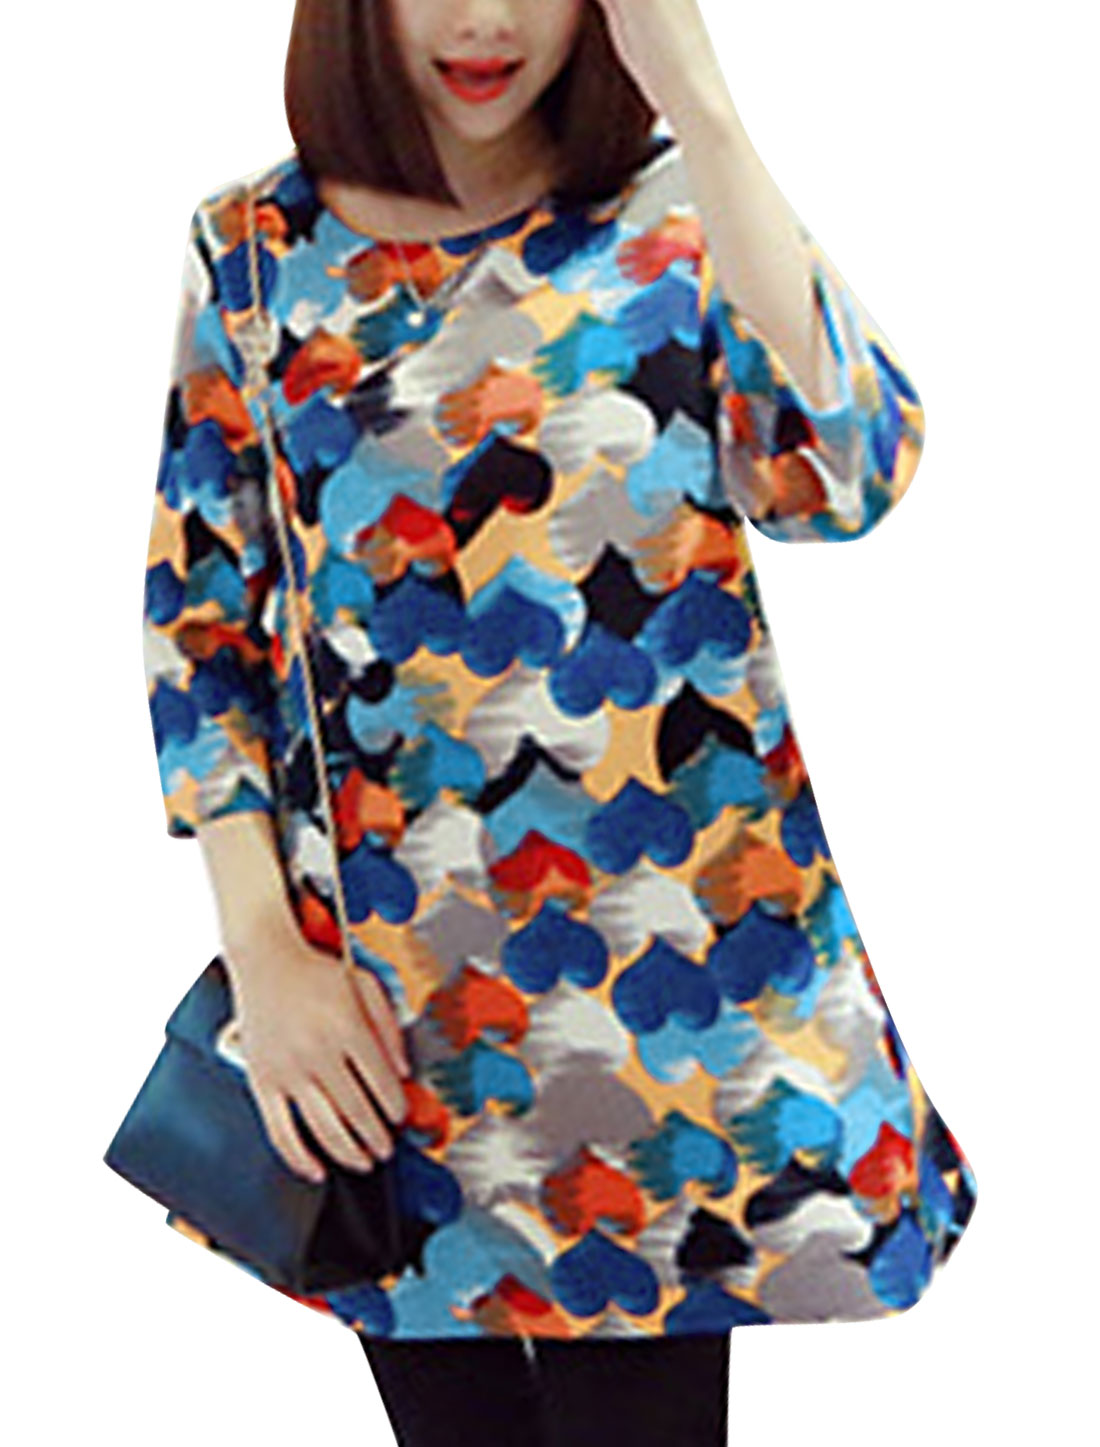 Ladies Hearts Pattern 3/4 Sleeve Leisure Tunic Top Multi Color XS